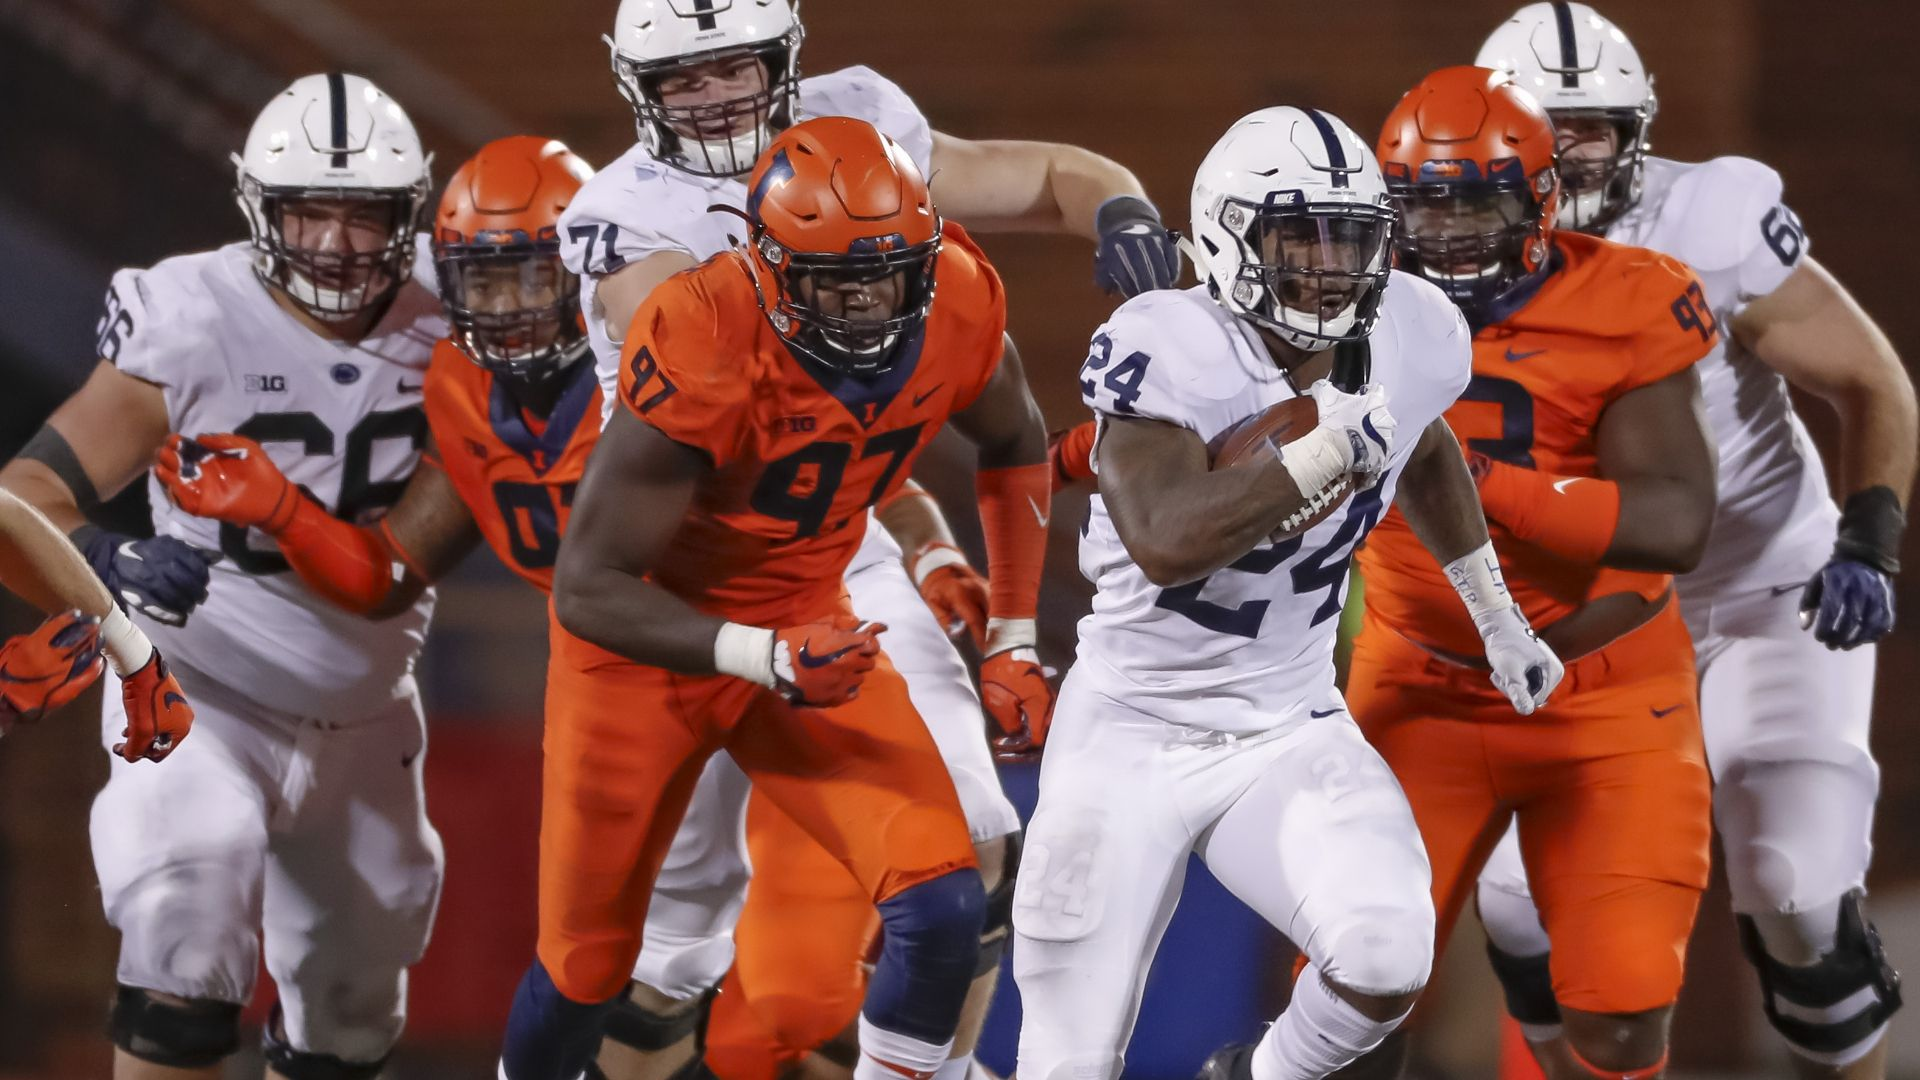 Penn State takes off in 2nd half to avoid a stumble